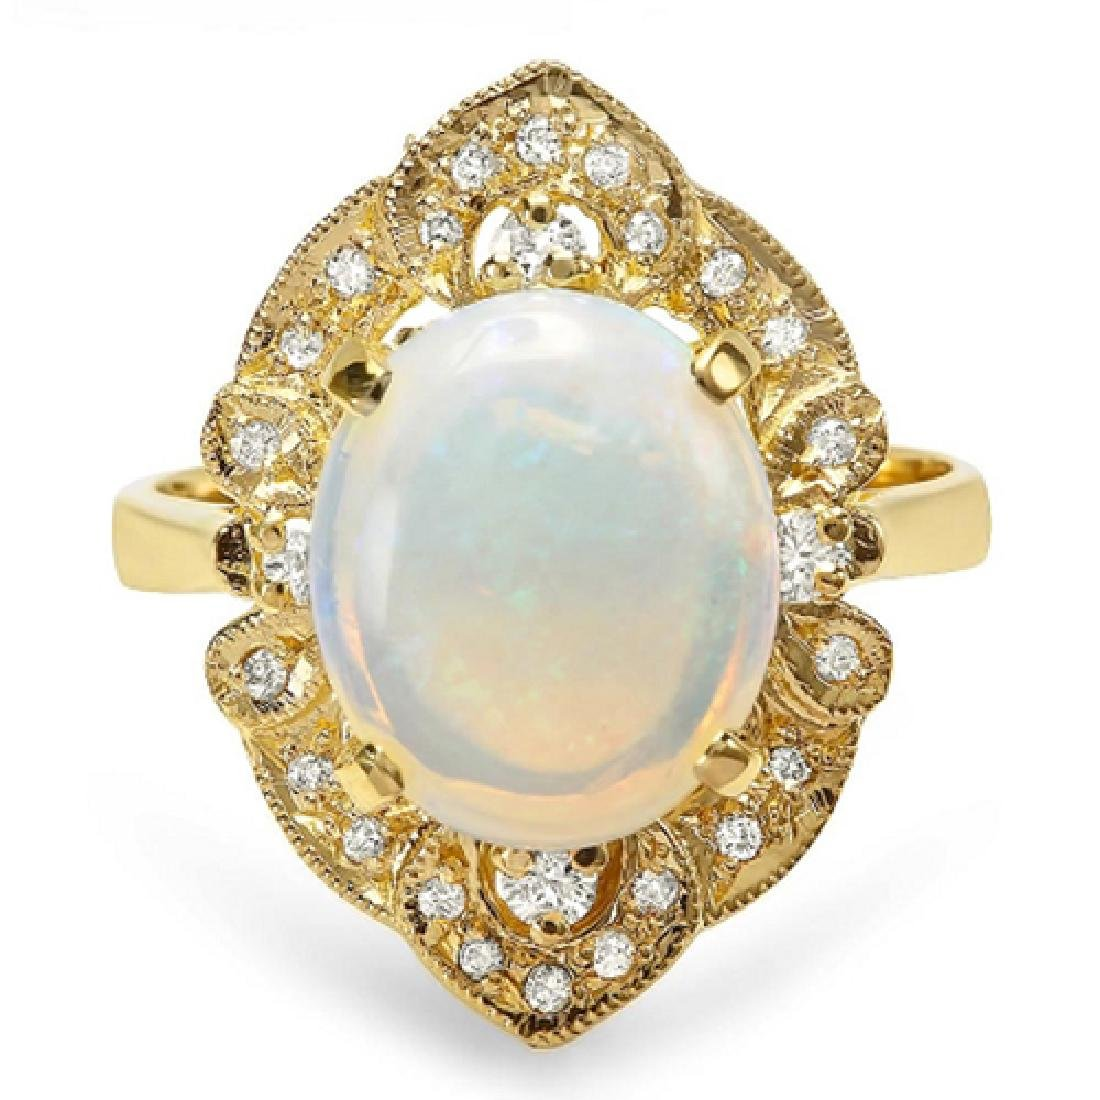 3.15 Carat Natural Opal 18K Solid Yellow Gold Diamond